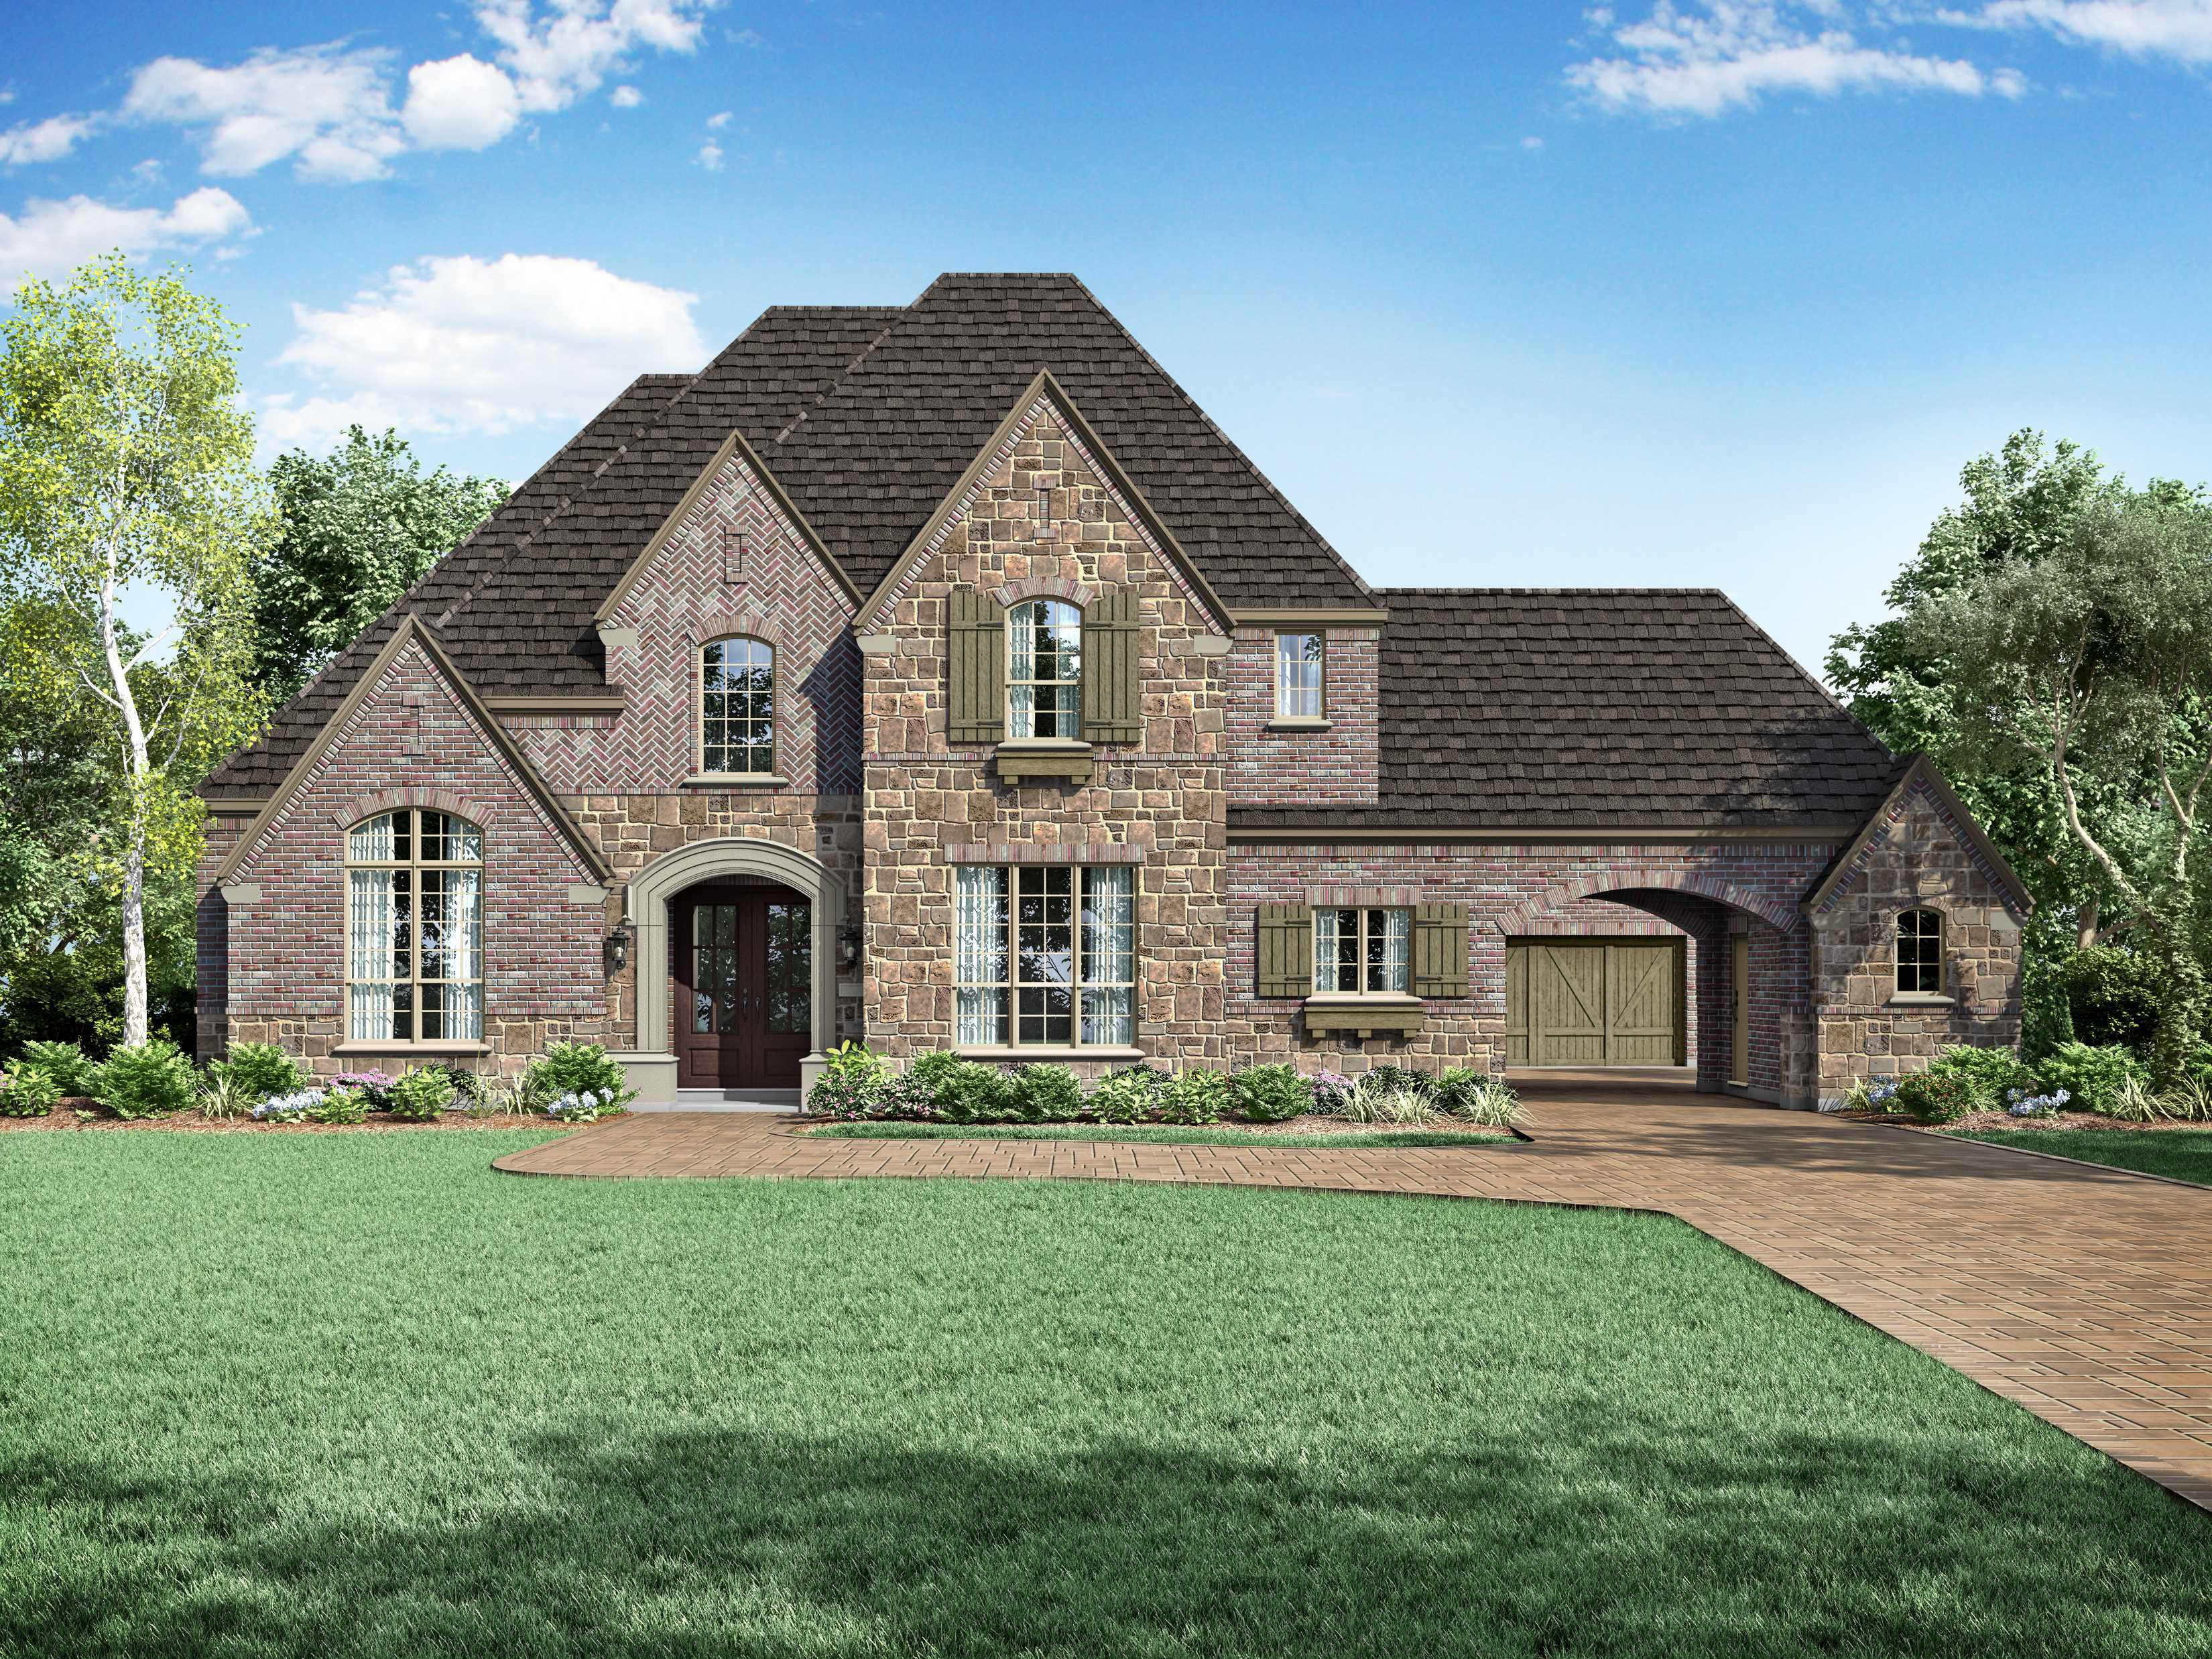 Single Family for Active at Whitley Place - Plan 6791 801 Cliff Creek Dr. Prosper, Texas 75078 United States